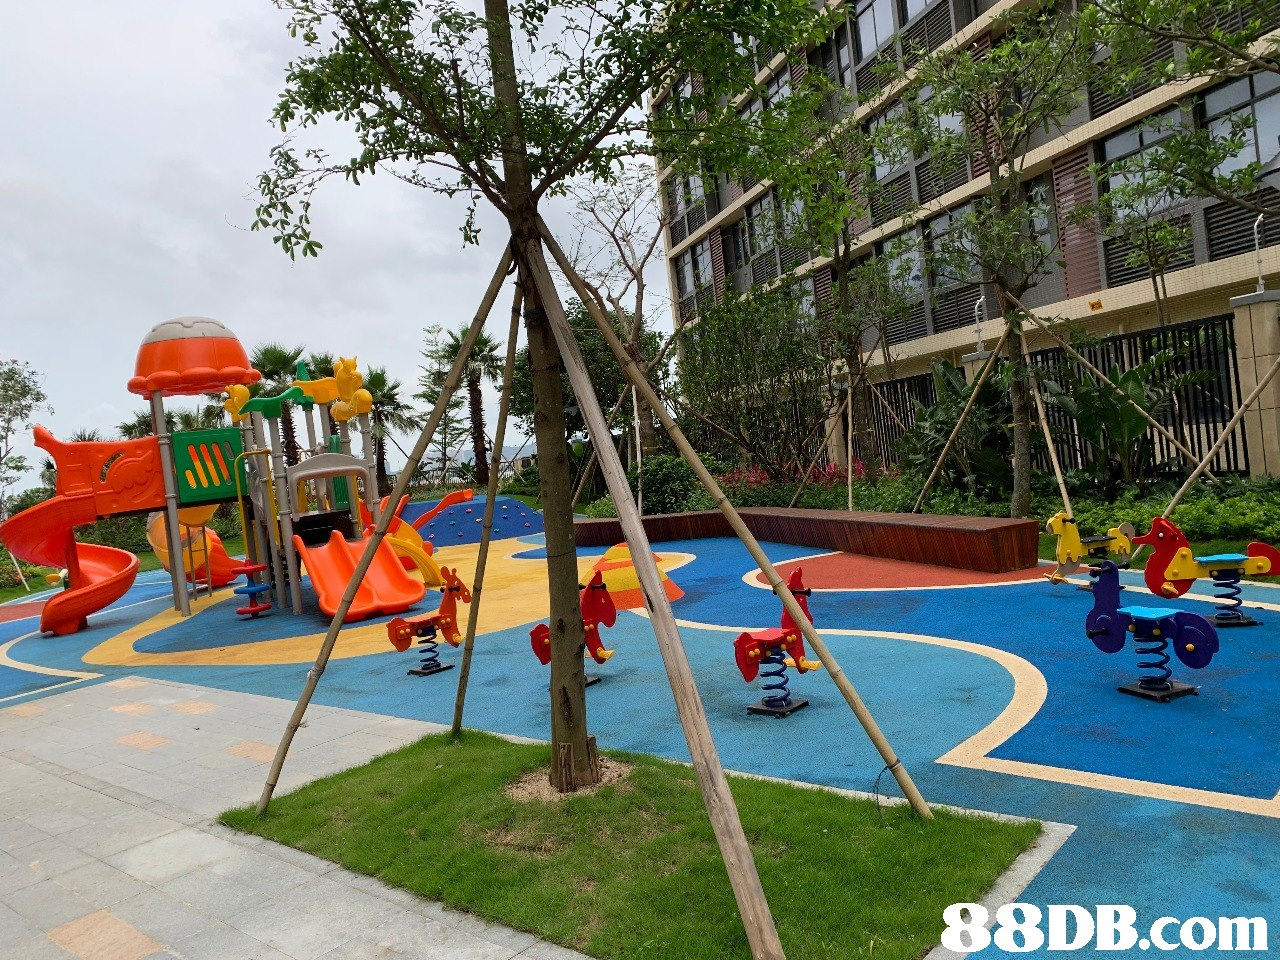 Playground,Public space,Outdoor play equipment,Human settlement,Playground slide